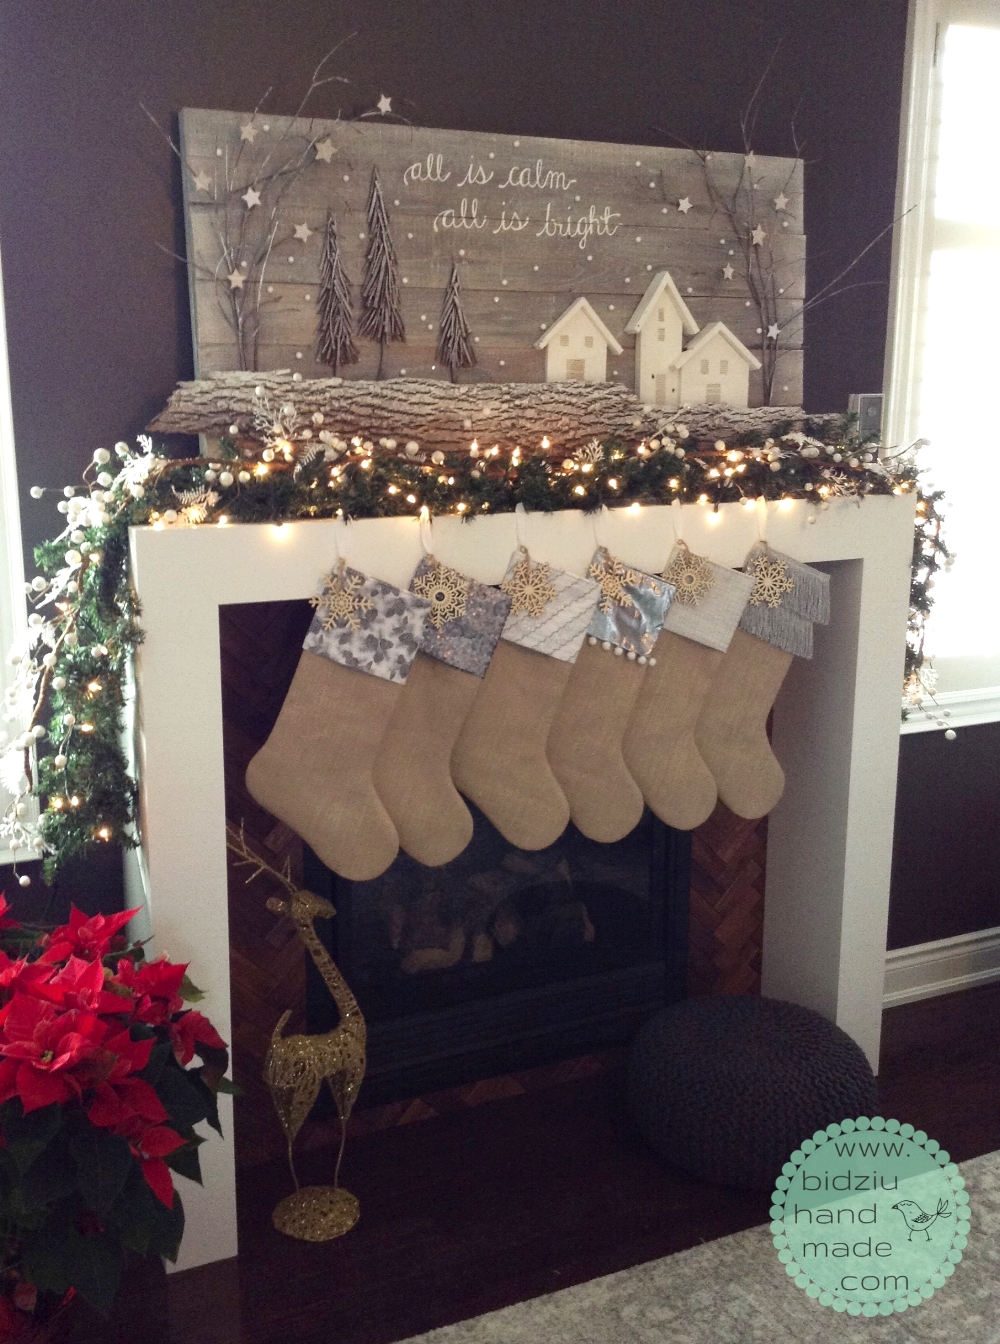 DIY modern Christmas stockings, burlap stockings, burlap white silver Christmas stockings, custom made stockings, modern Christmas stockings, chic Christmas stockings, rustic Christmas stockings, bidziu handmade, bidziuhandmade